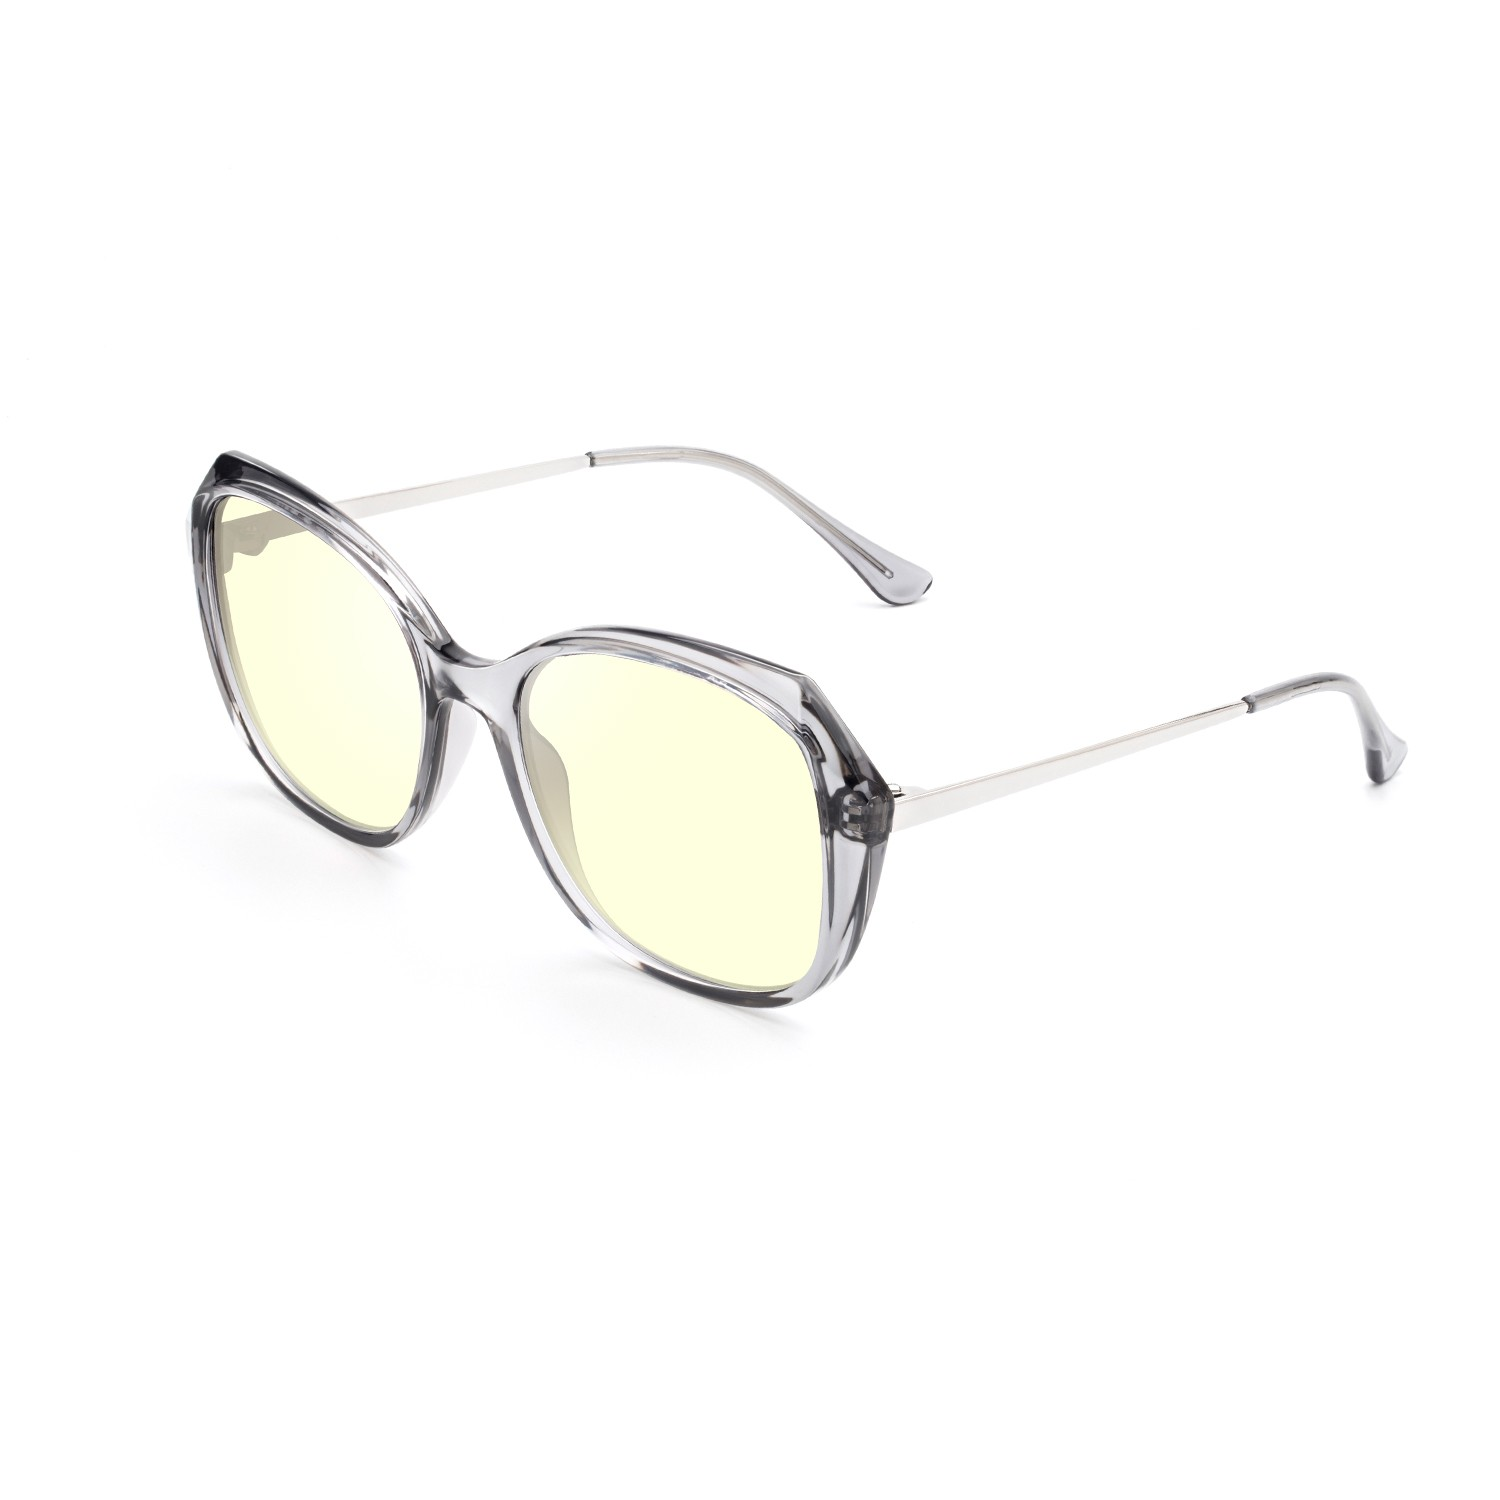 Ladies' TR90 Optical Frame with Blue Light Blocking Lens Manufacturers, Ladies' TR90 Optical Frame with Blue Light Blocking Lens Factory, Supply Ladies' TR90 Optical Frame with Blue Light Blocking Lens